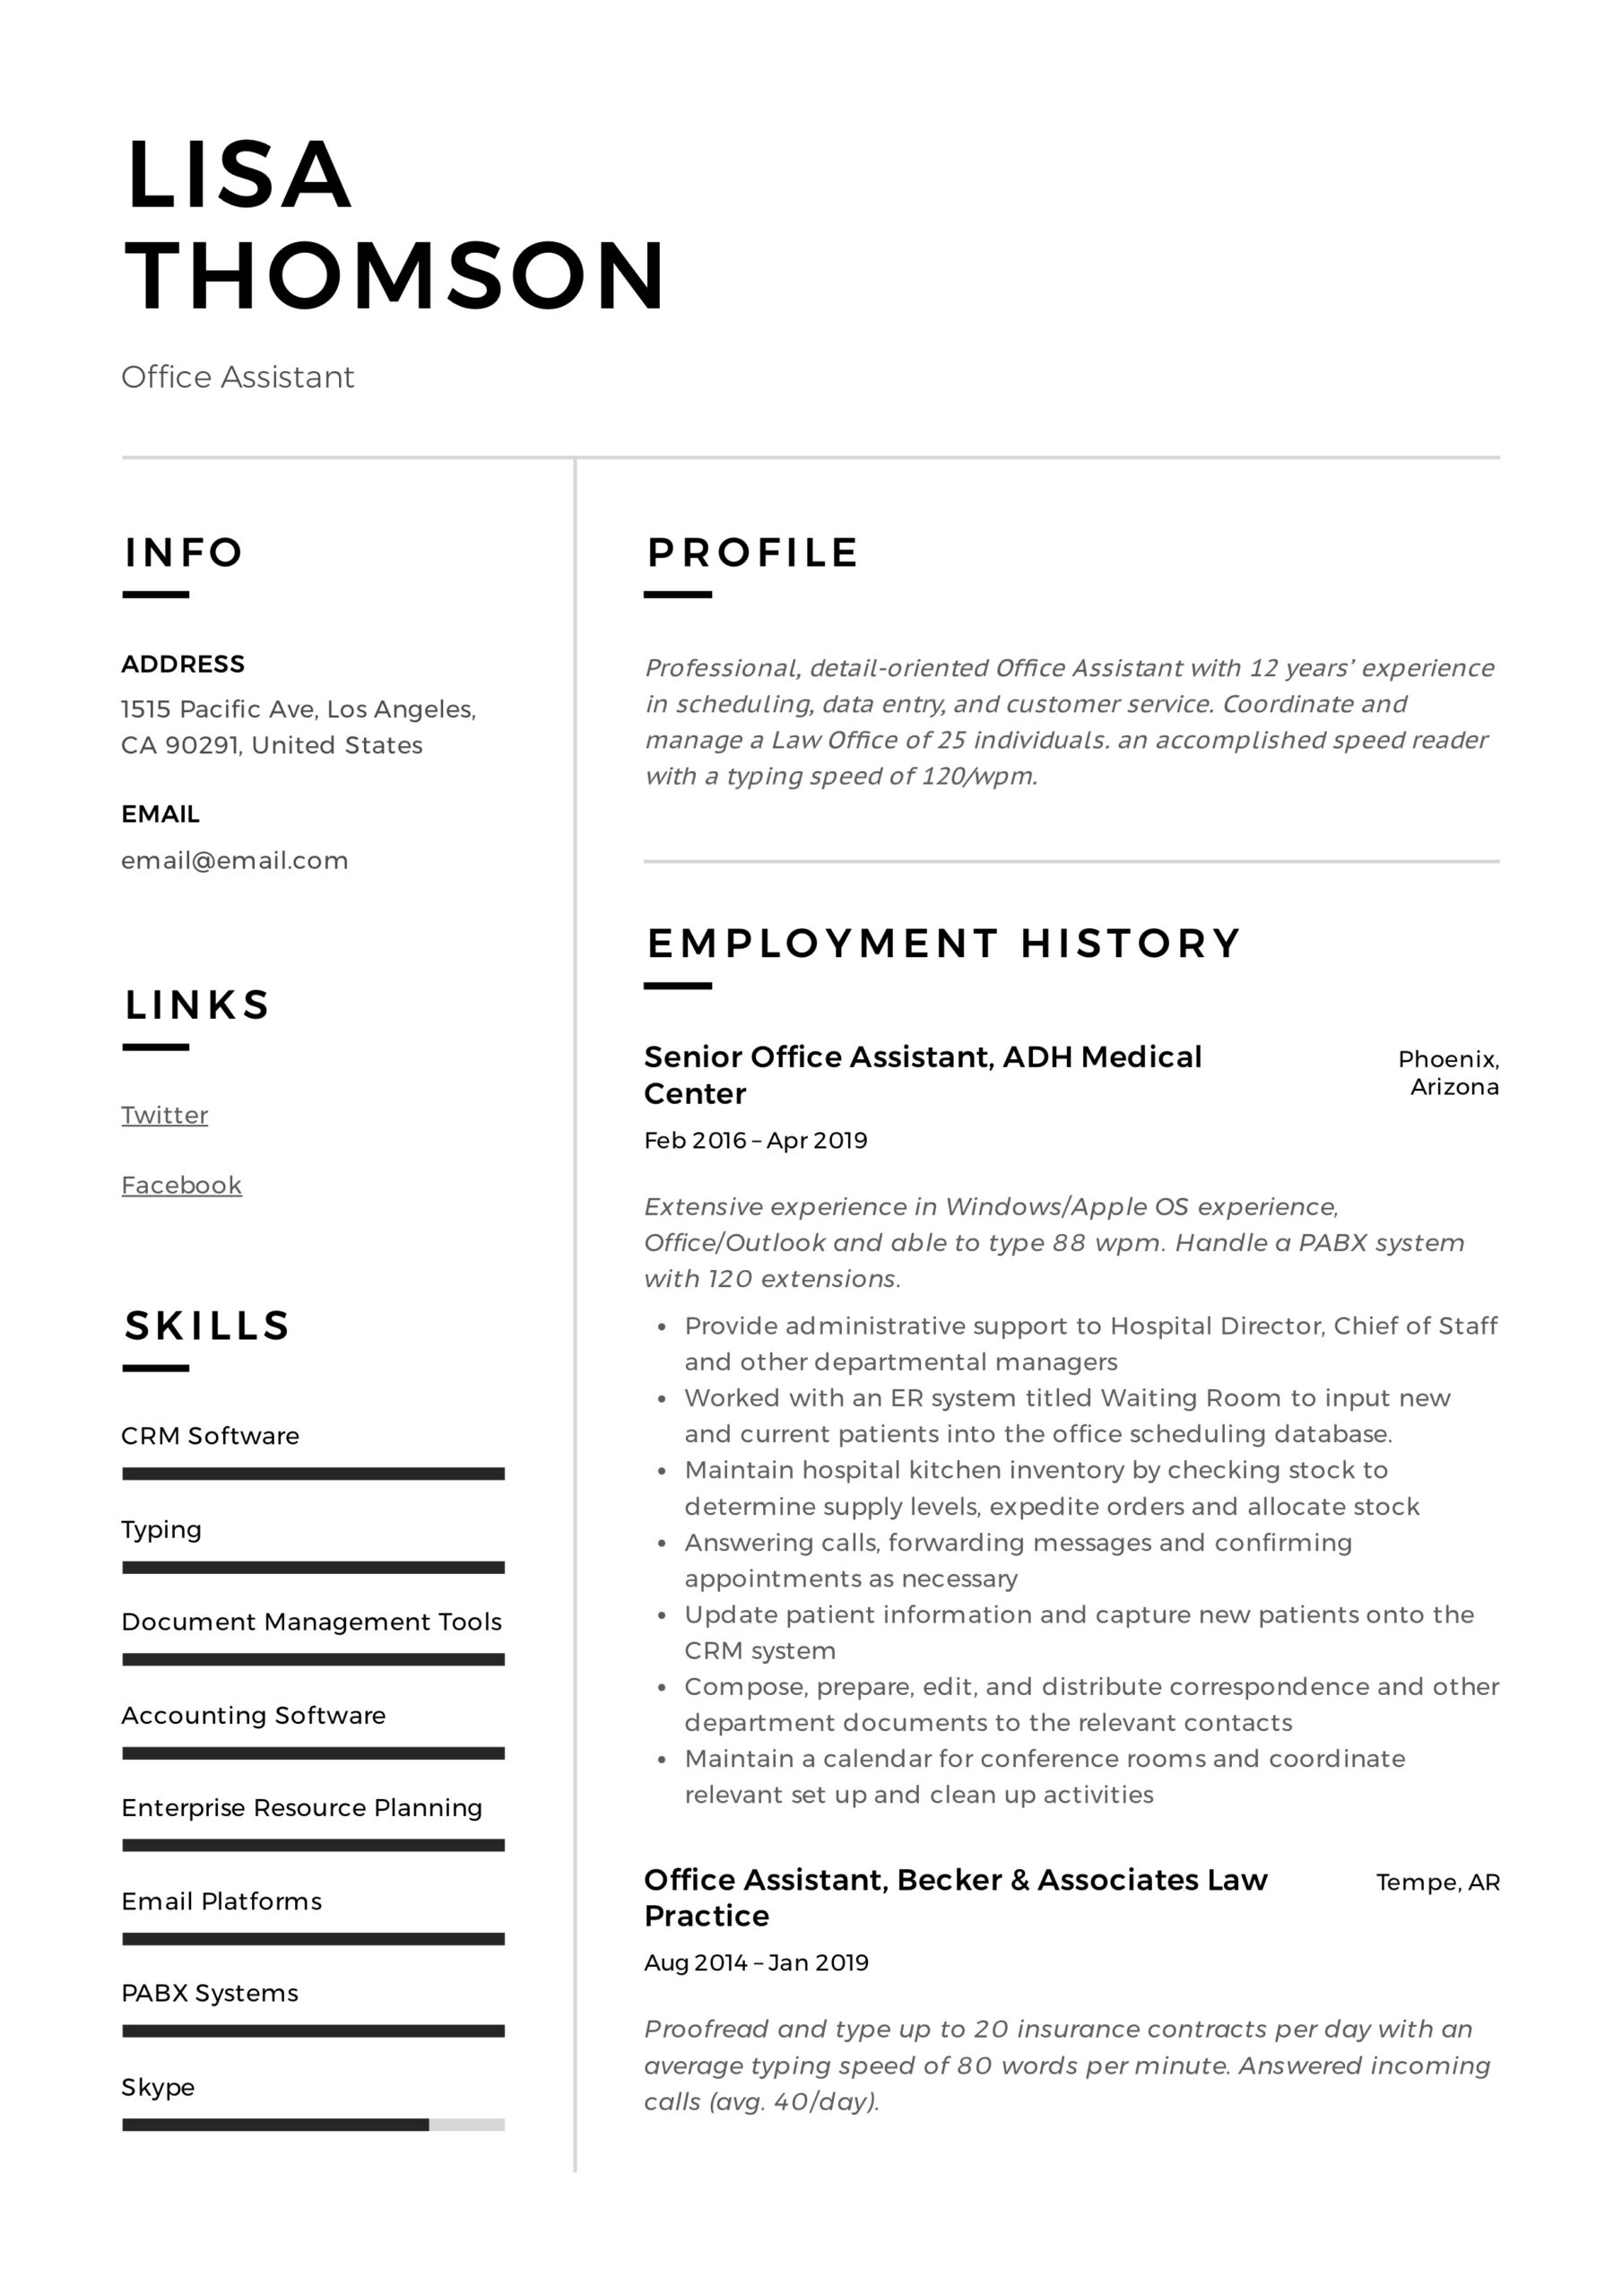 office assistant resume writing guide templates duties lisa thomson content creator match Resume Office Assistant Duties Resume